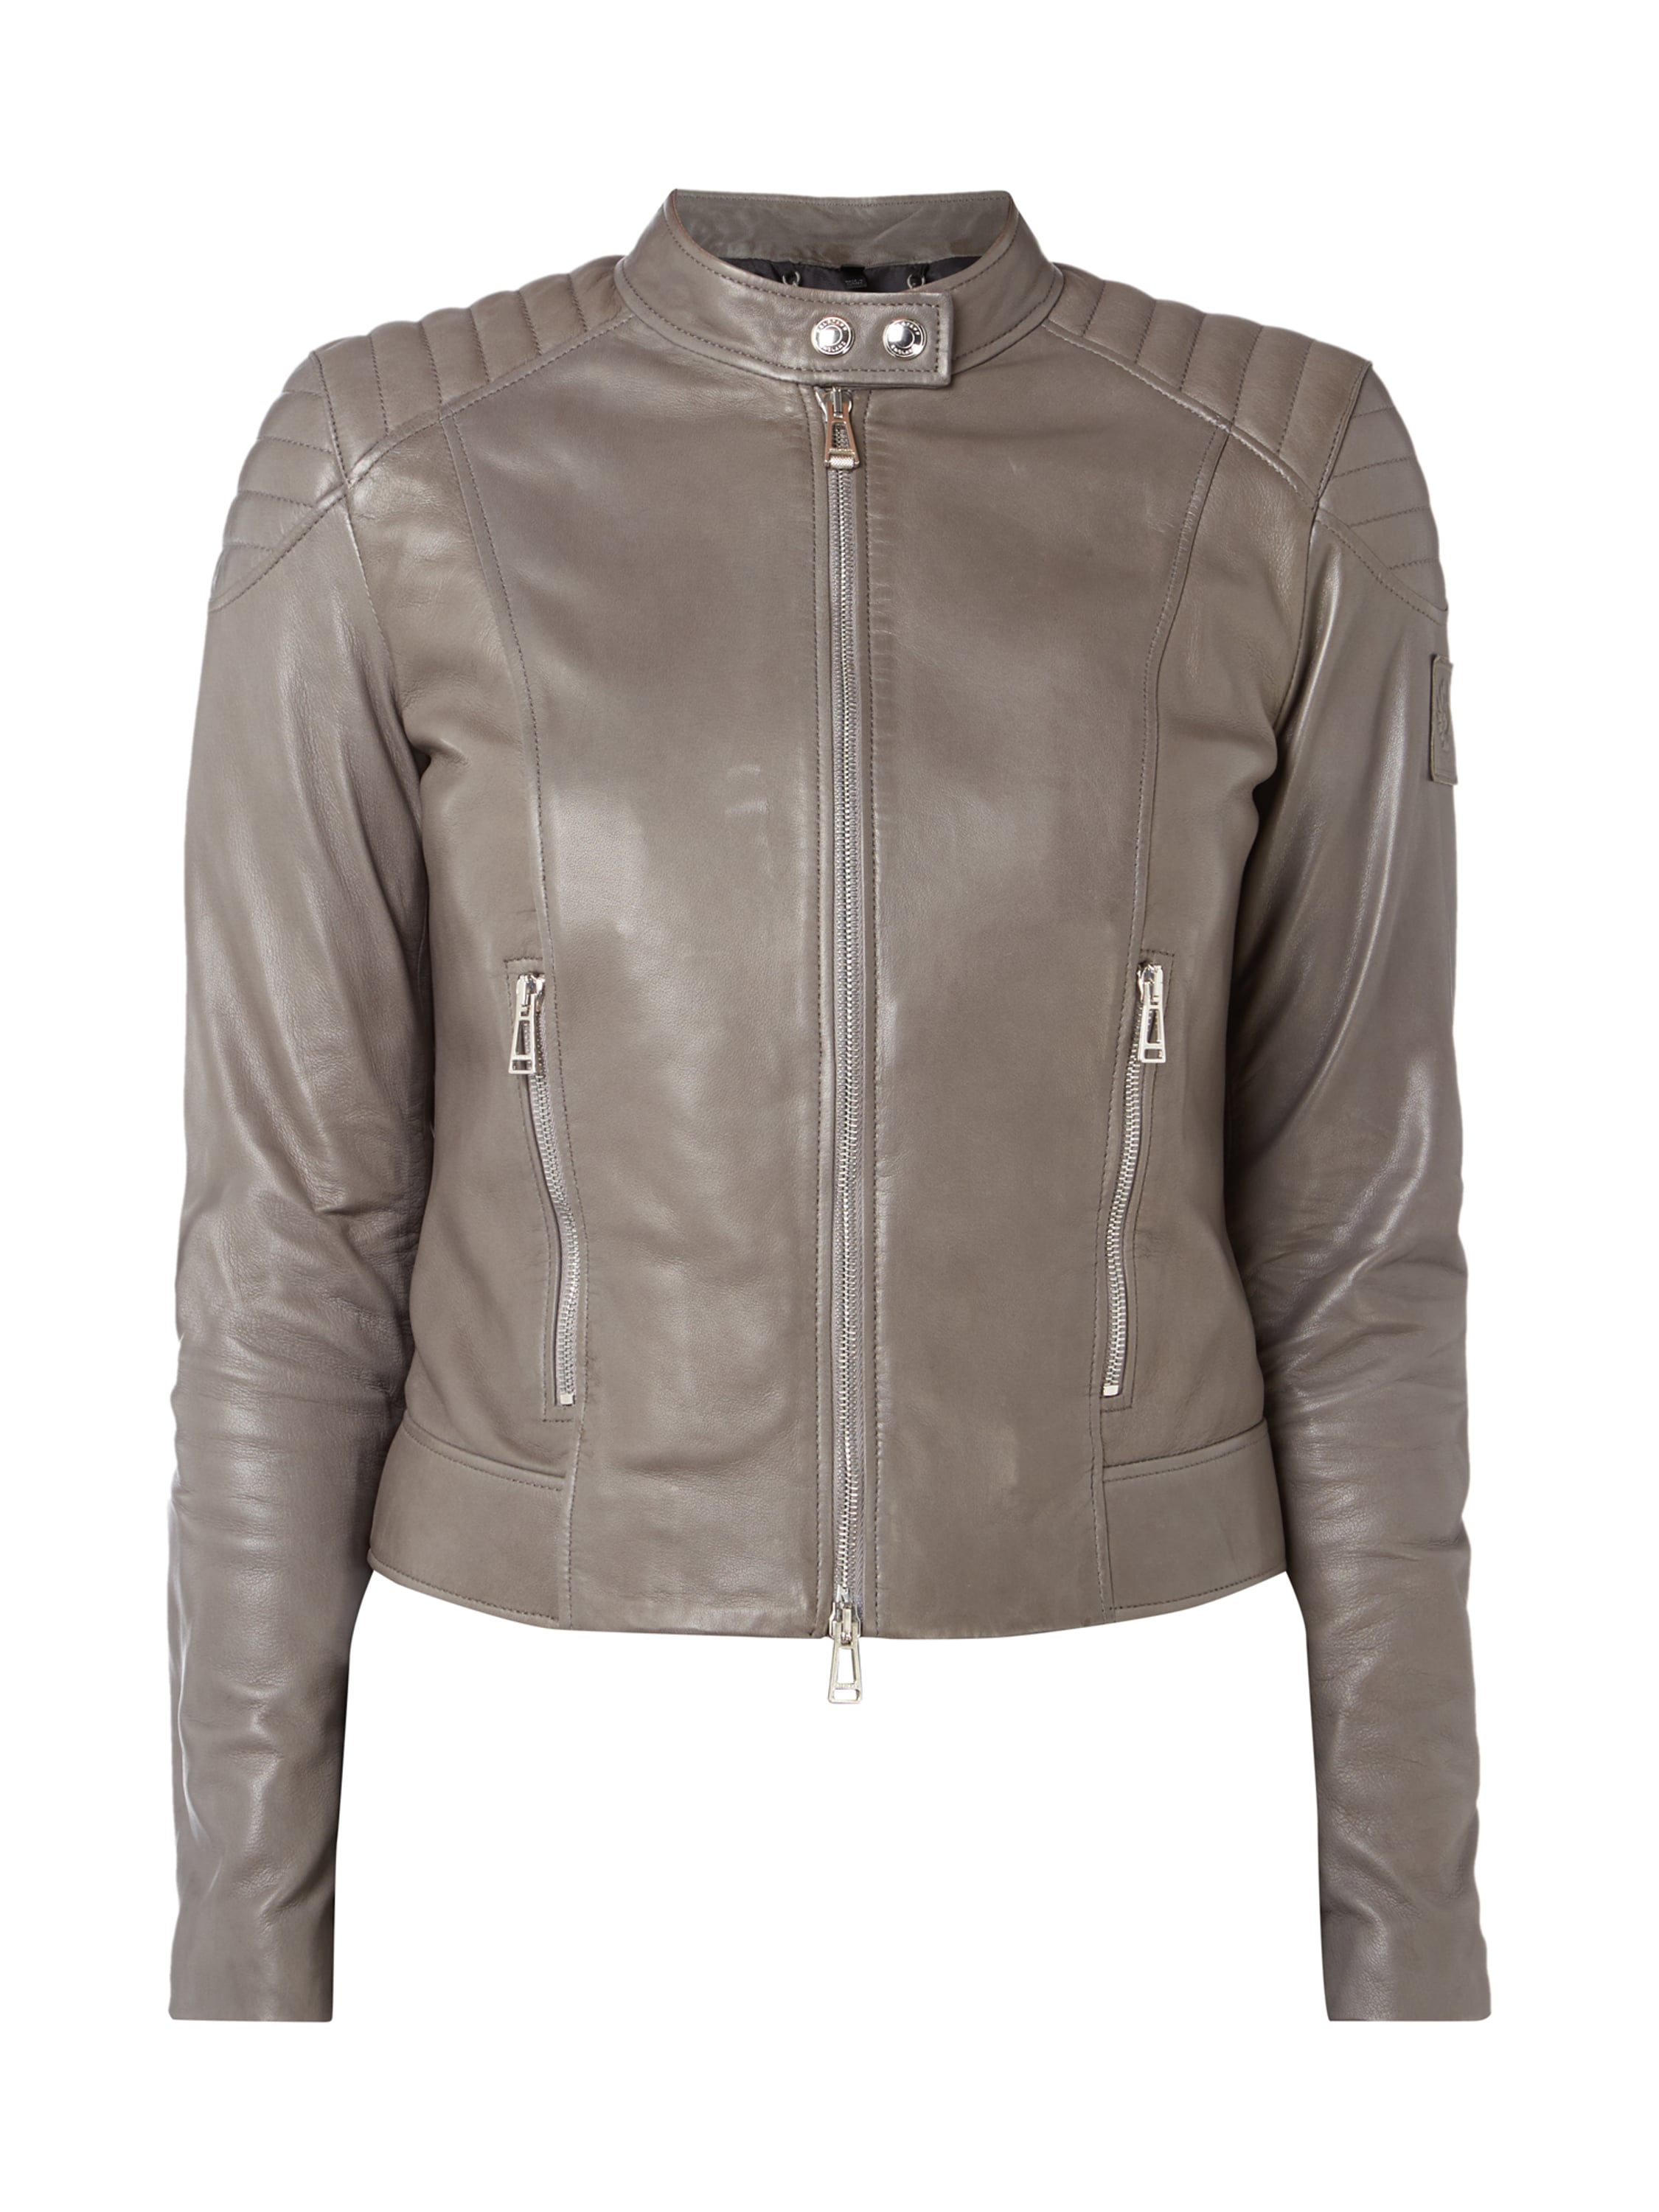 belstaff lederjacke damen mit fell apollo. Black Bedroom Furniture Sets. Home Design Ideas